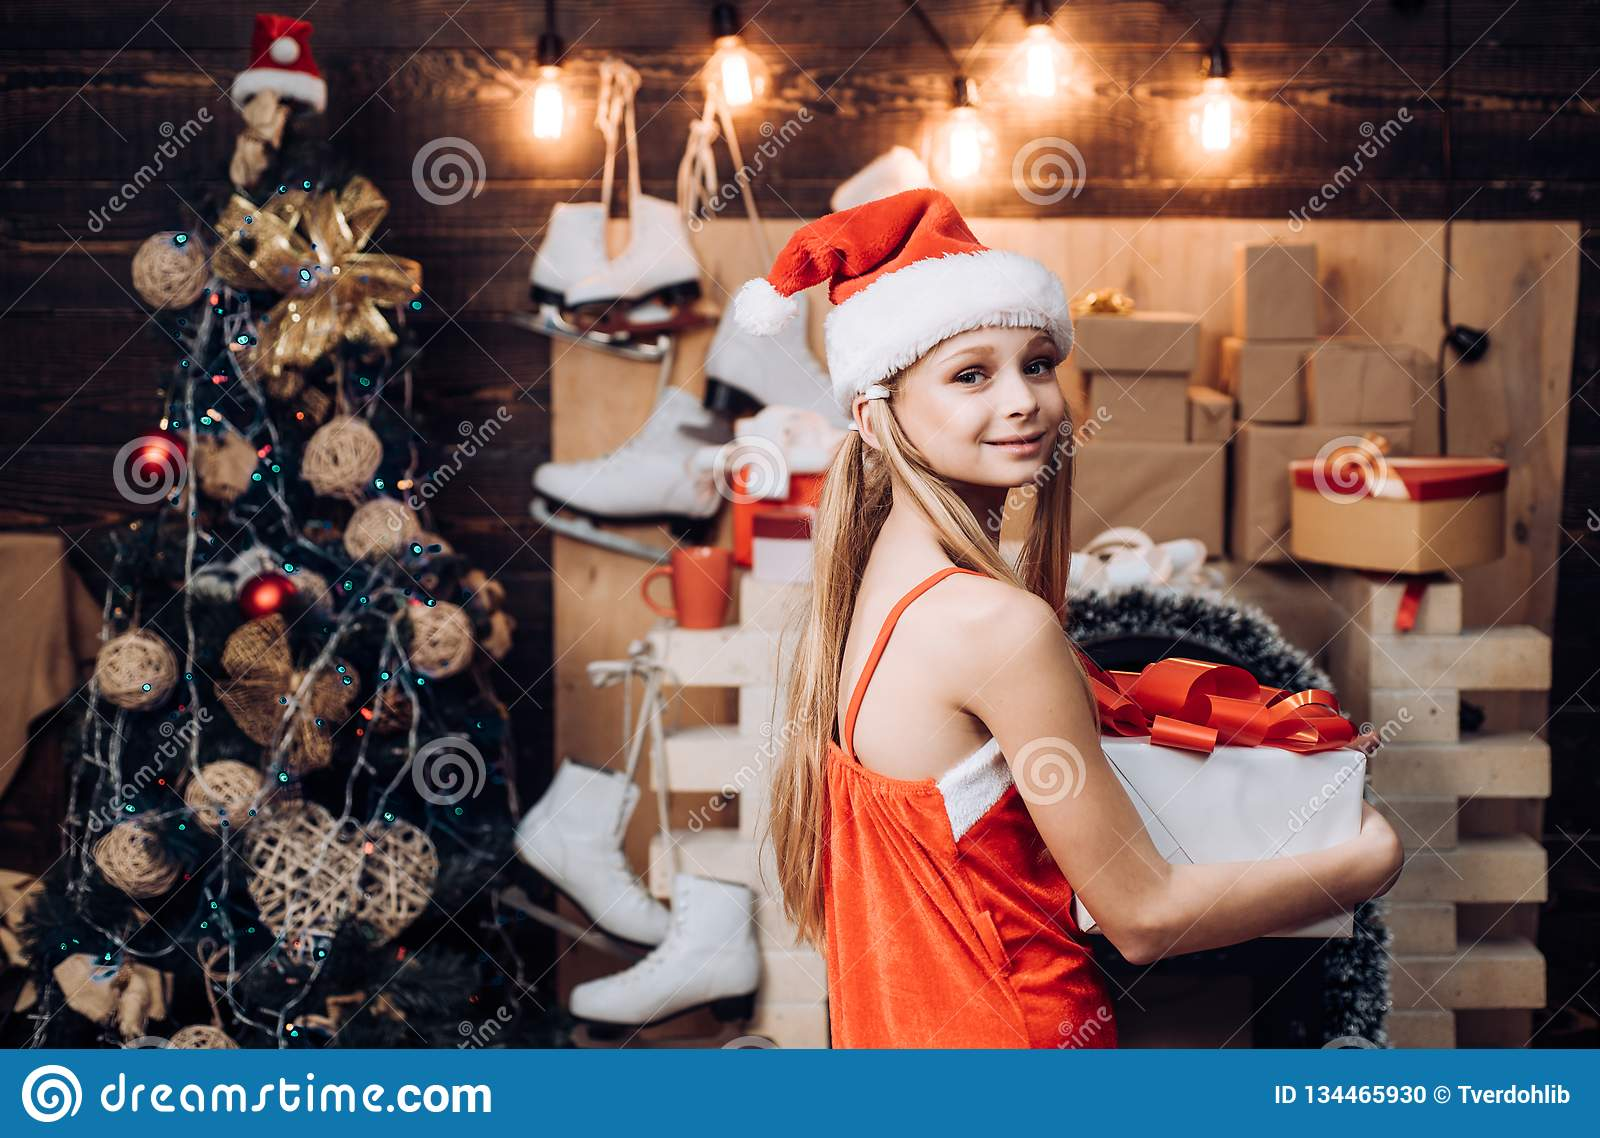 Happy little girl dressed in winter clothing think about Santa near Christmas tree. Teenager Christmas. Winter evening